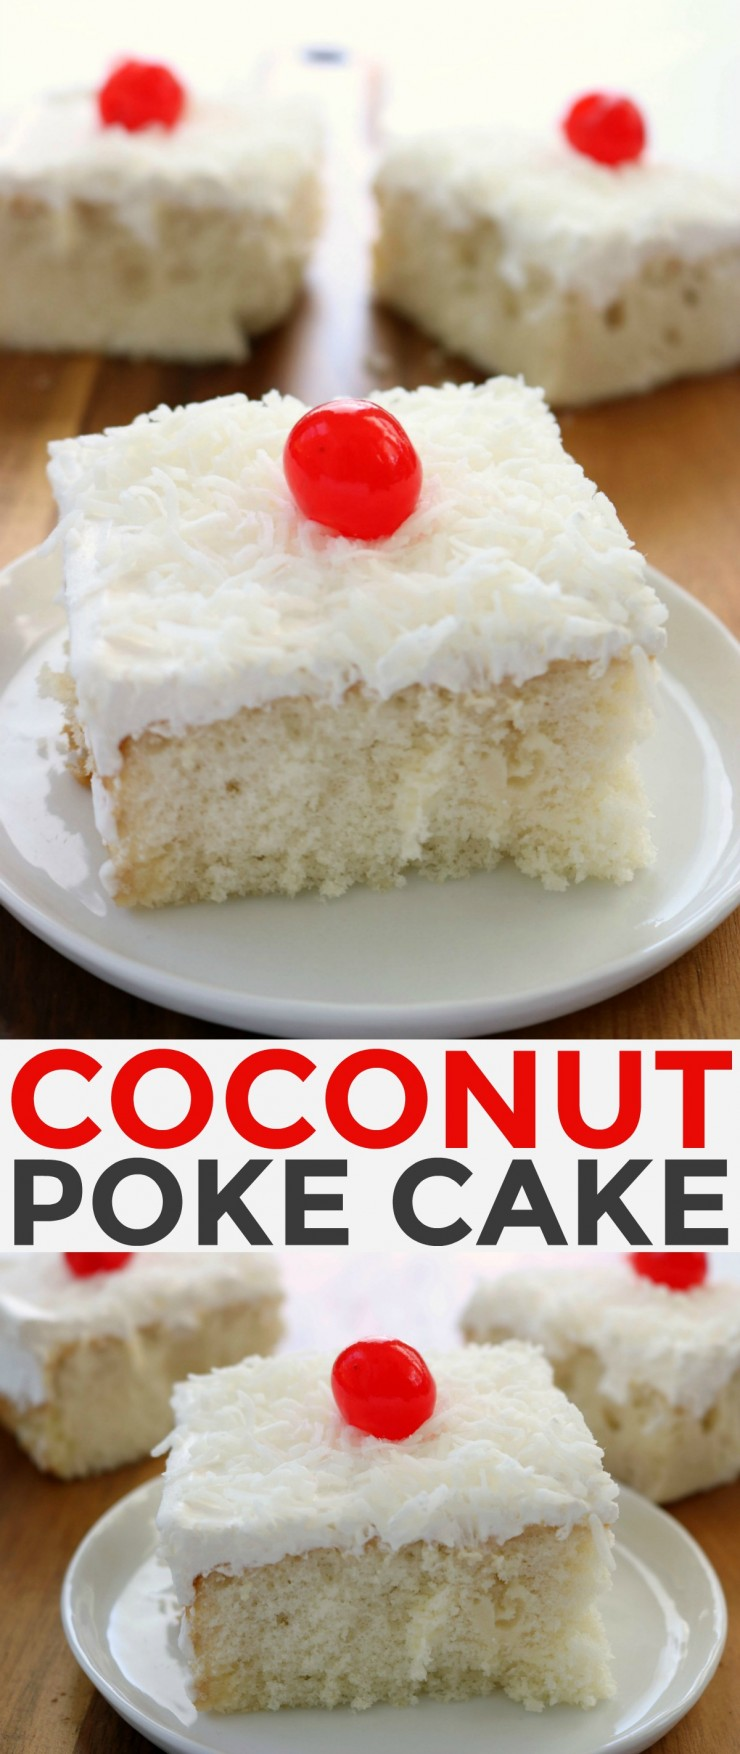 This Coconut Poke Cake is a delicious dessert to enjoy after dinner with a mug of coffee but it works equally as well for serving guests.